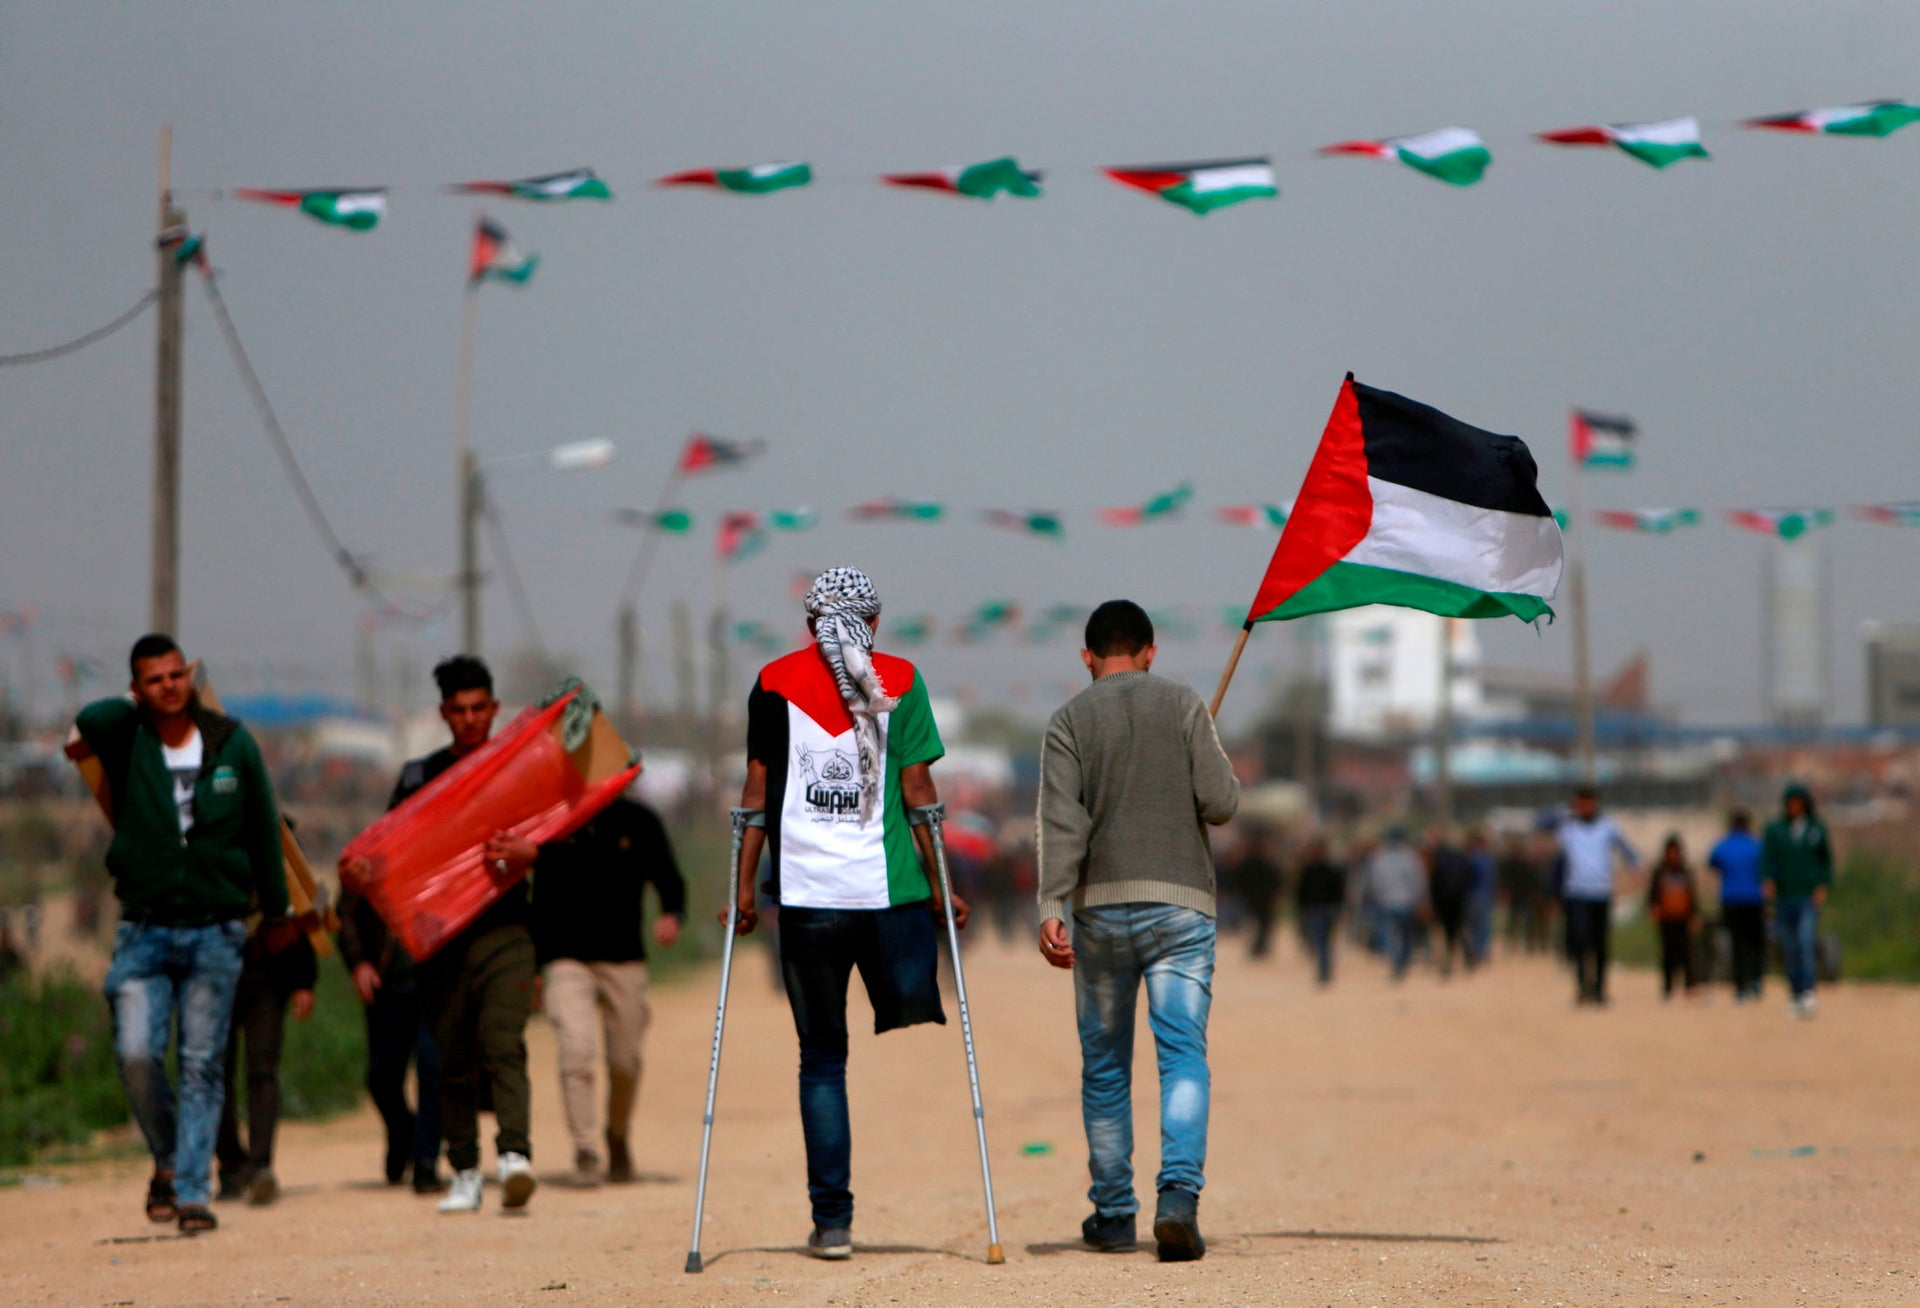 A Palestinian amputee walks on crutches with another holding a Palestinian flag as they head toward a demonstration near the border with Israel, east of Gaza City, March 30, 2019.